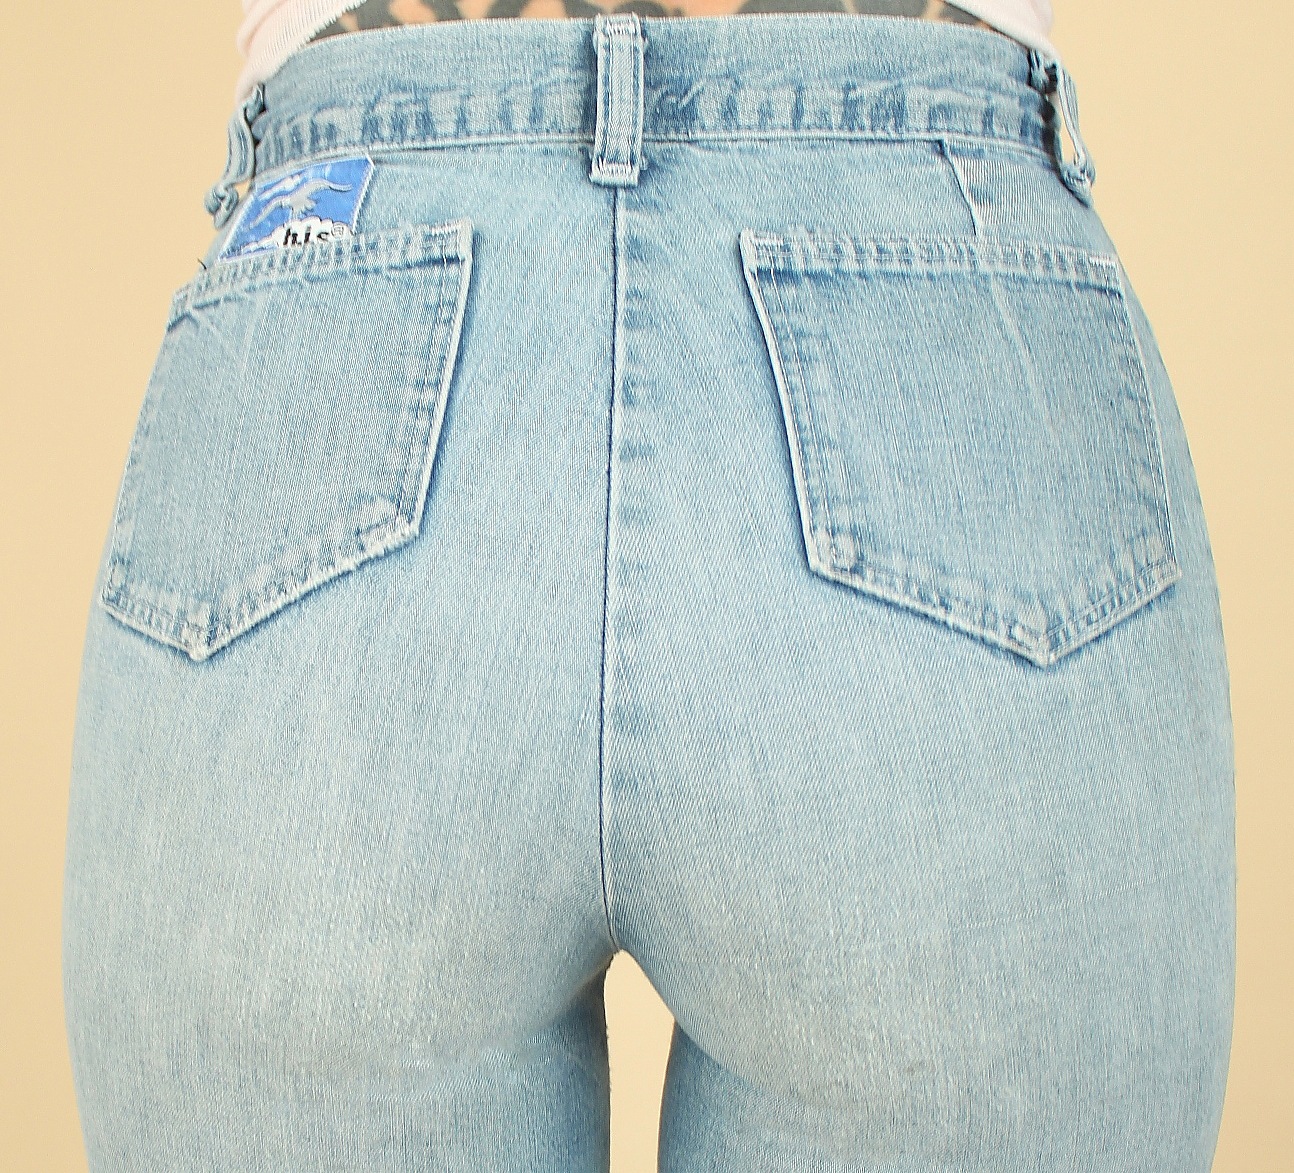 cfa3defe5d Vintage Bell Bottom Jeans // Super High Waist + Perfect Fade ...